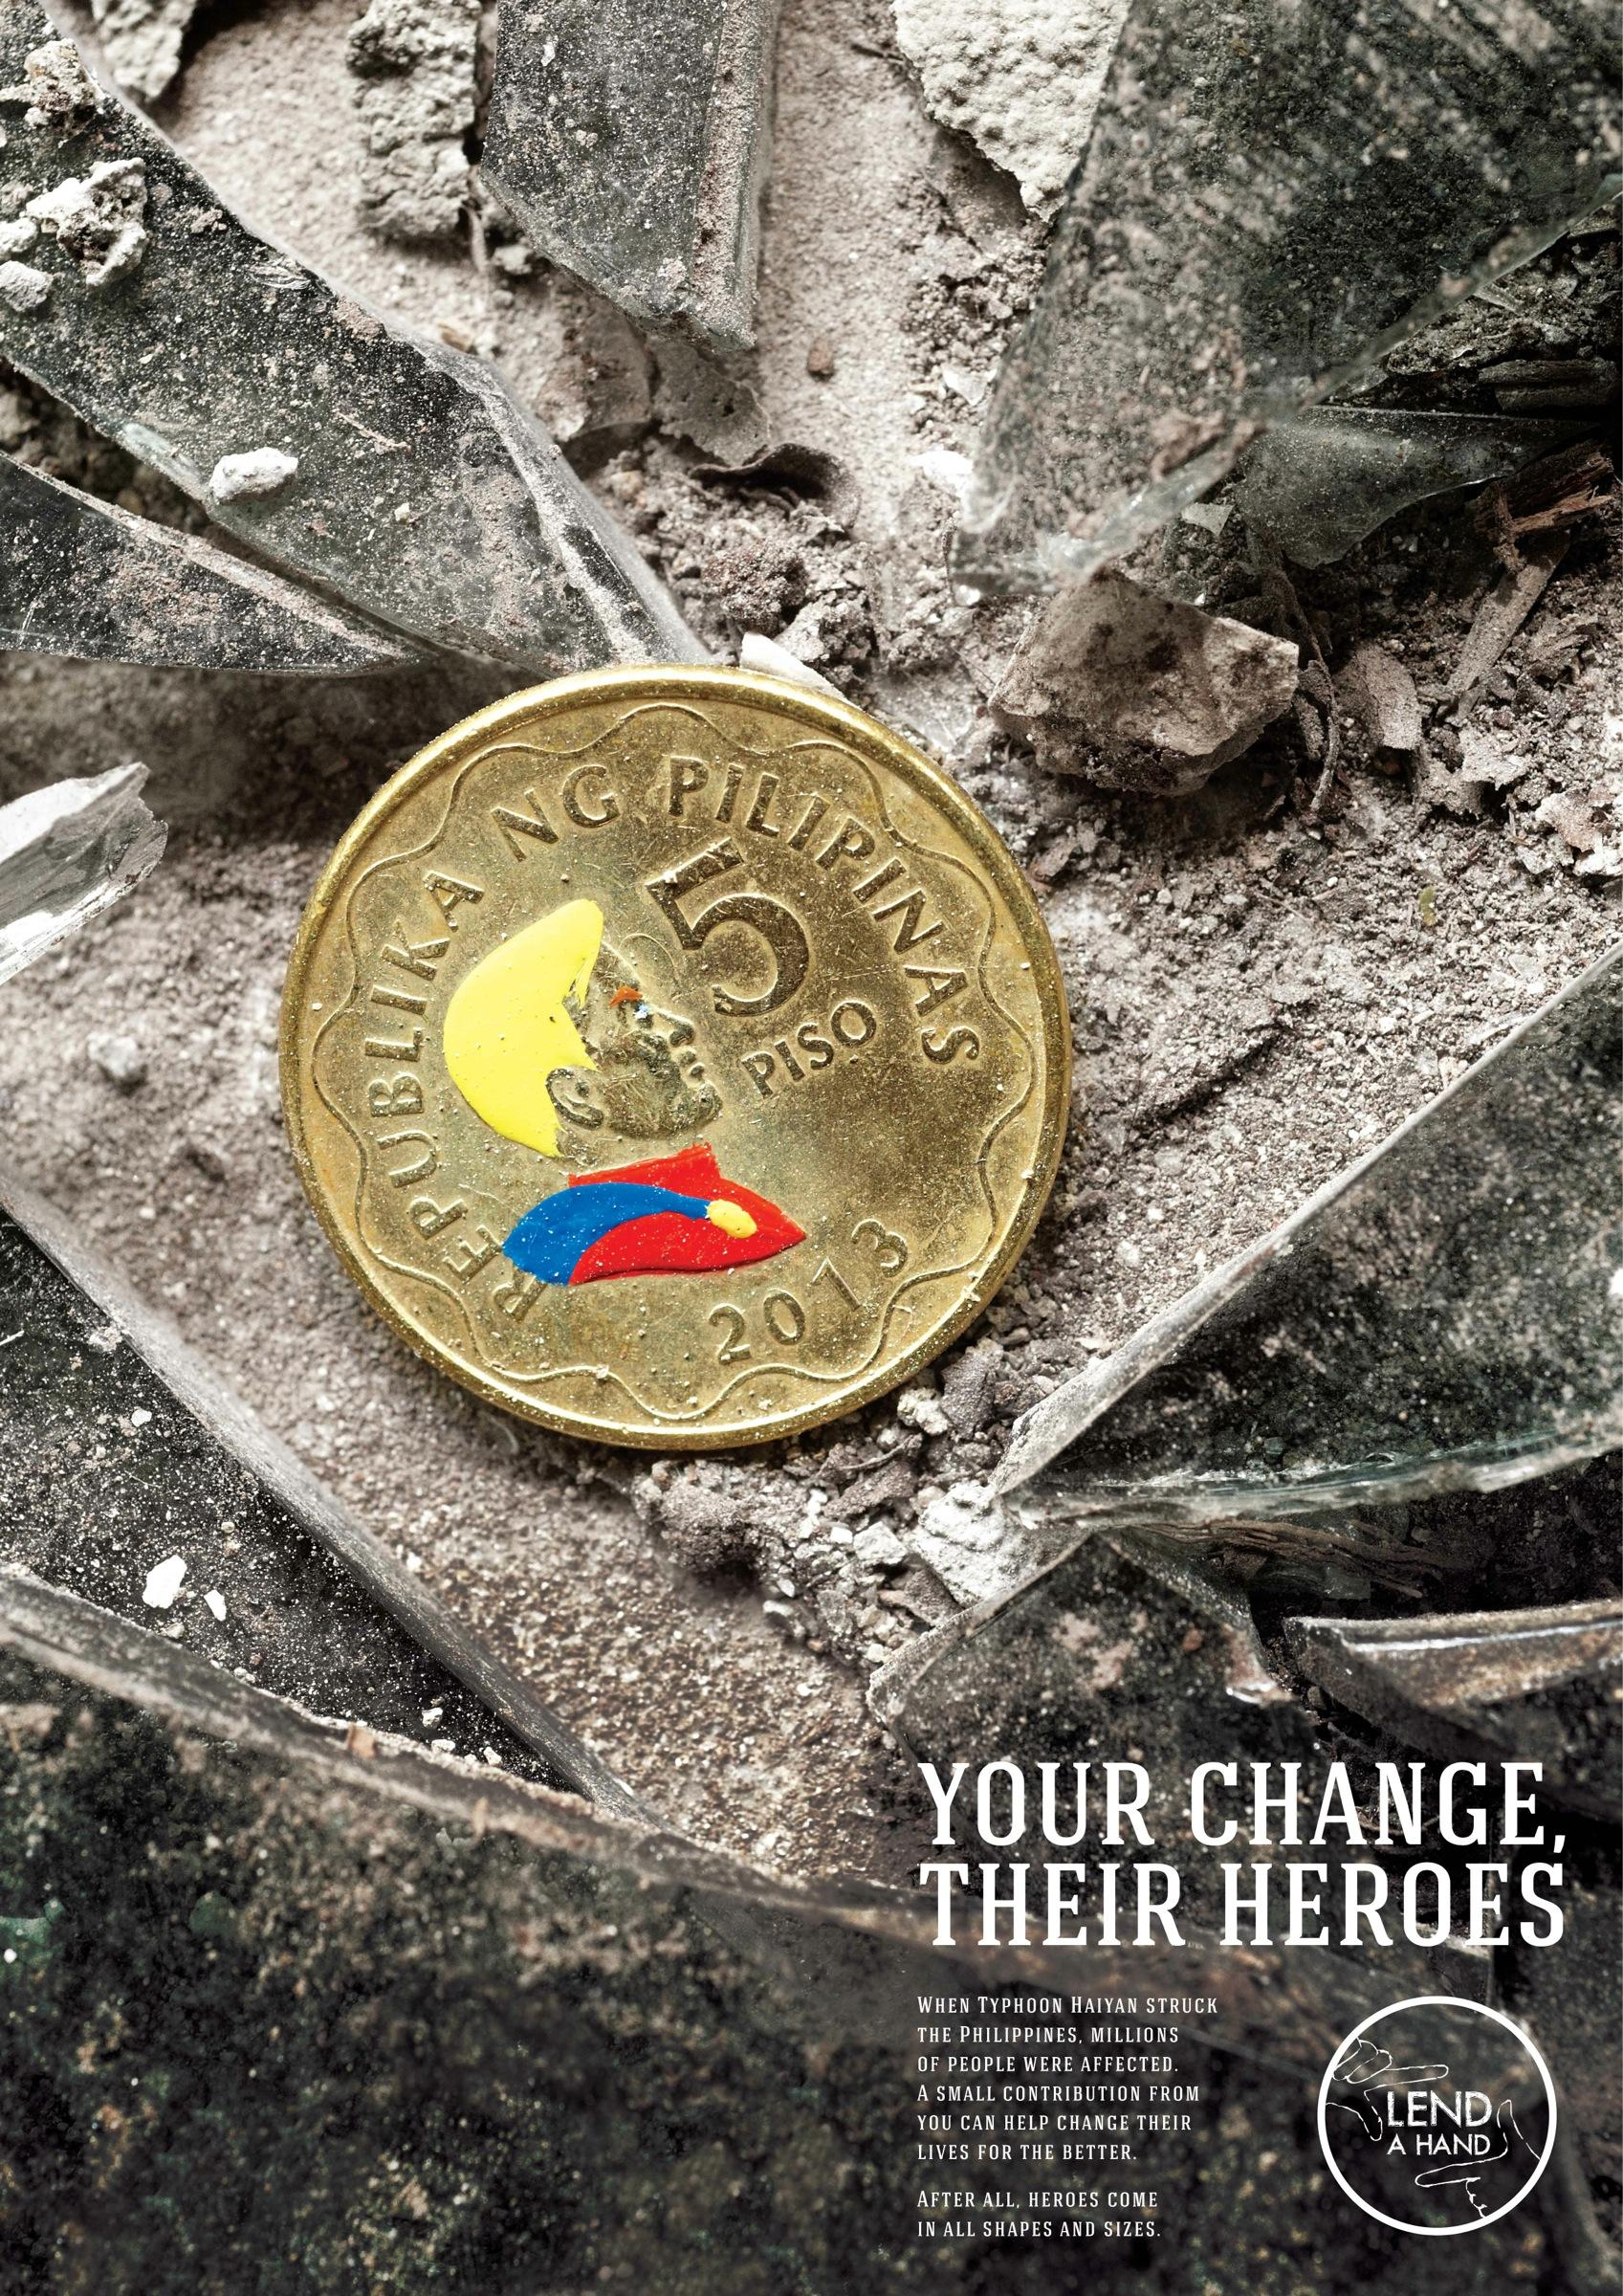 mixed_media_illustration_andre_levy_zhion_coin_tales_you_lose_superhero_typhoon_philippines_5_peso_poster_govt.jpg